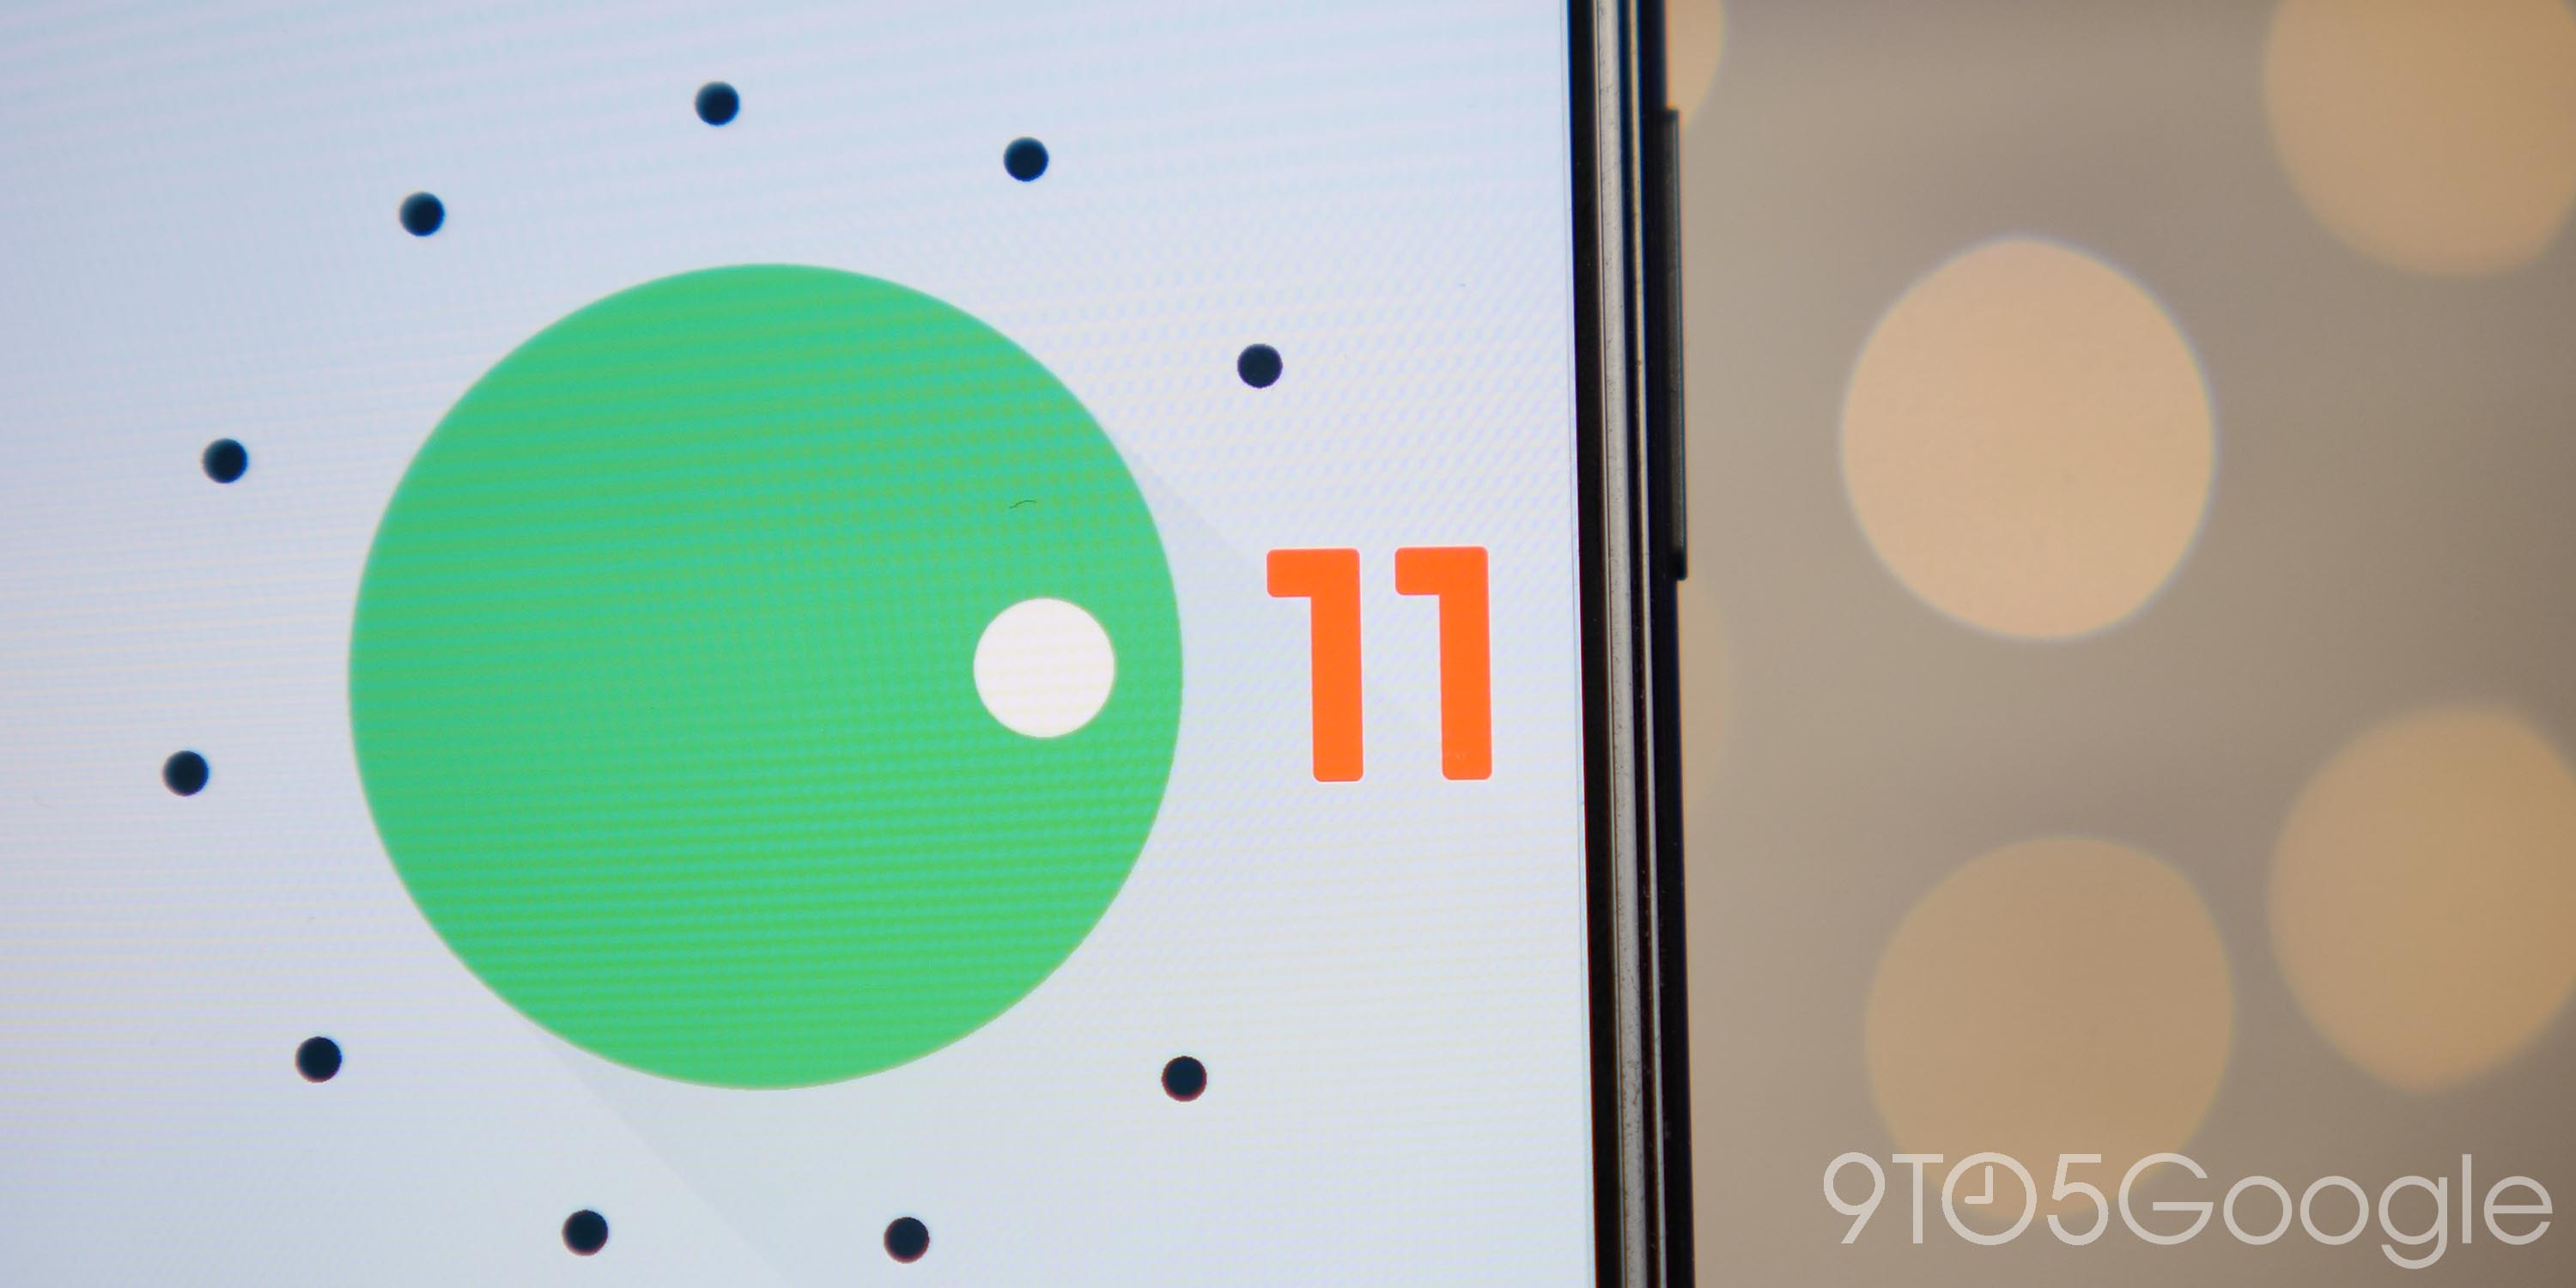 Google wants your Android 11 Beta 3 feedback in final survey - 9to5Google